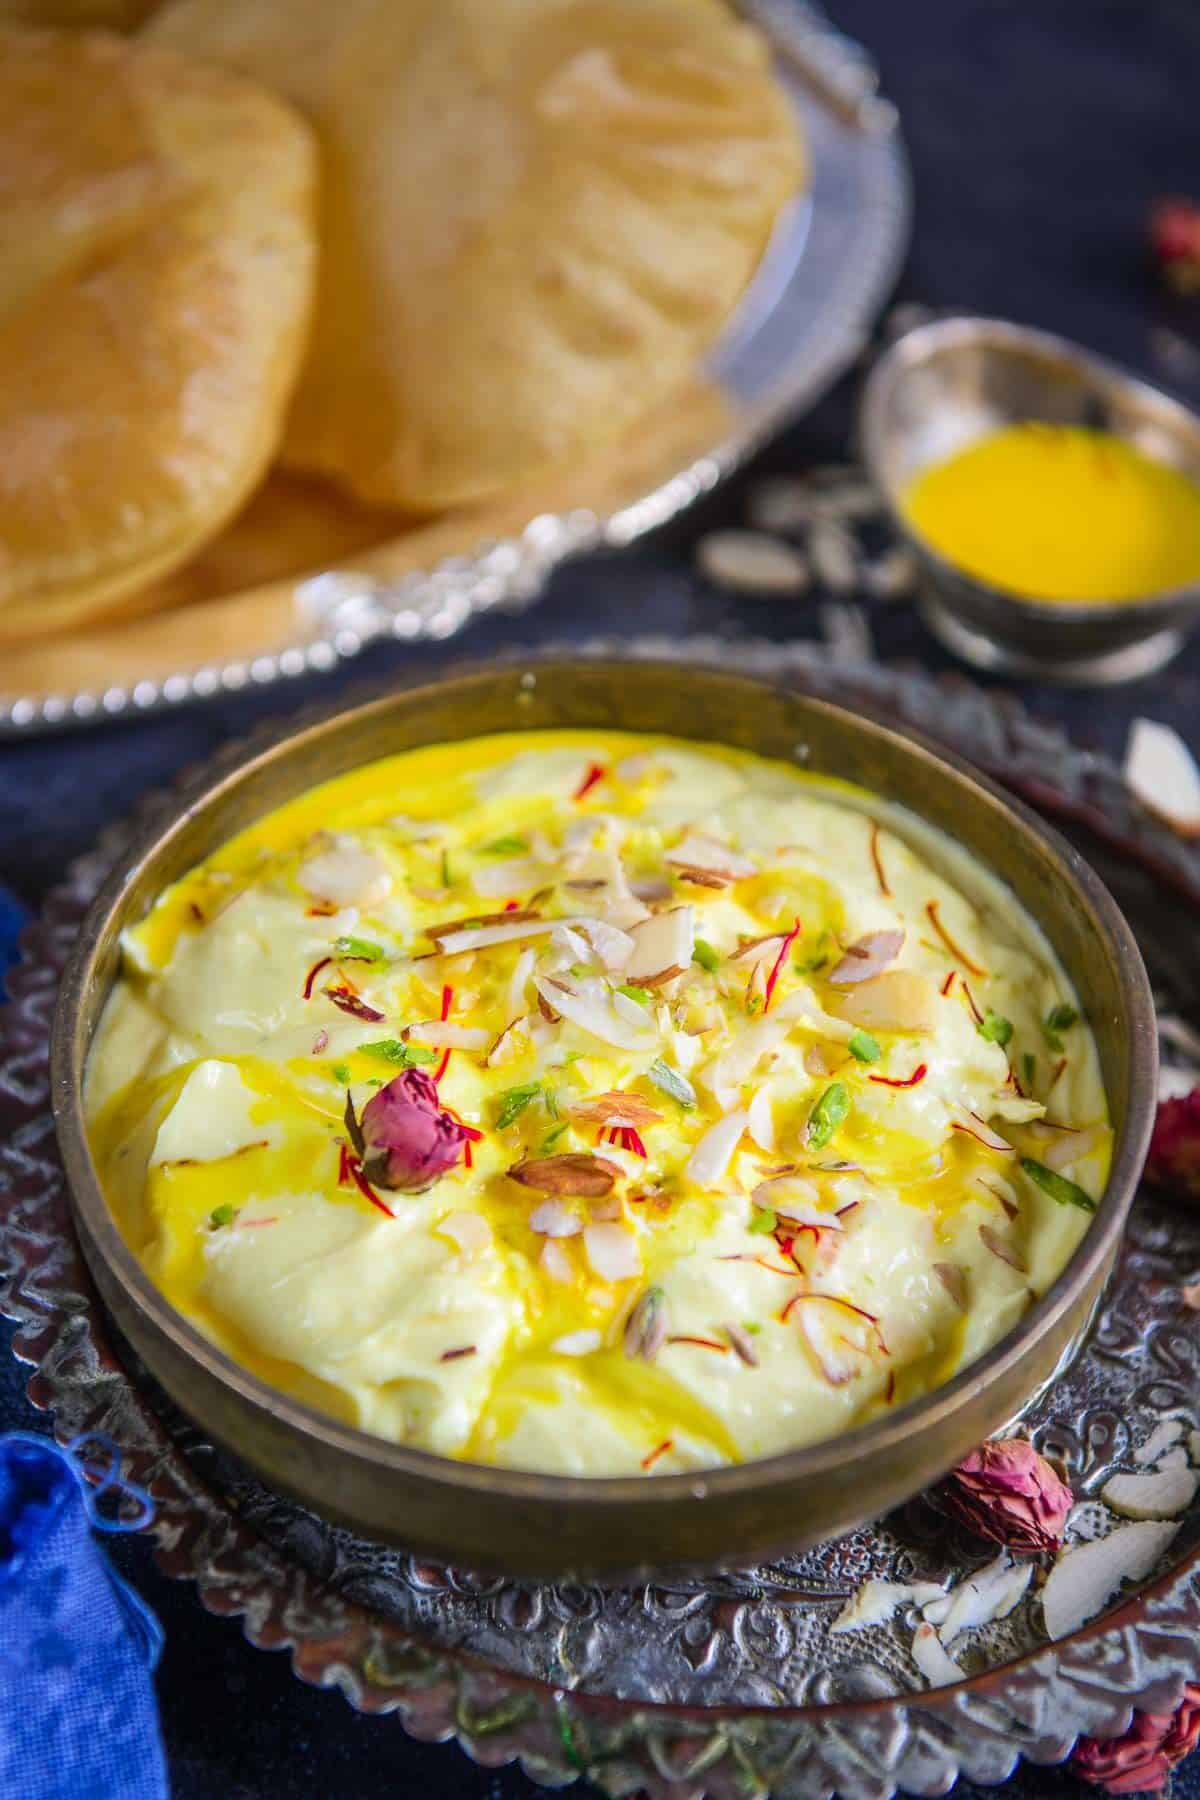 Shrikhand served in a bowl.